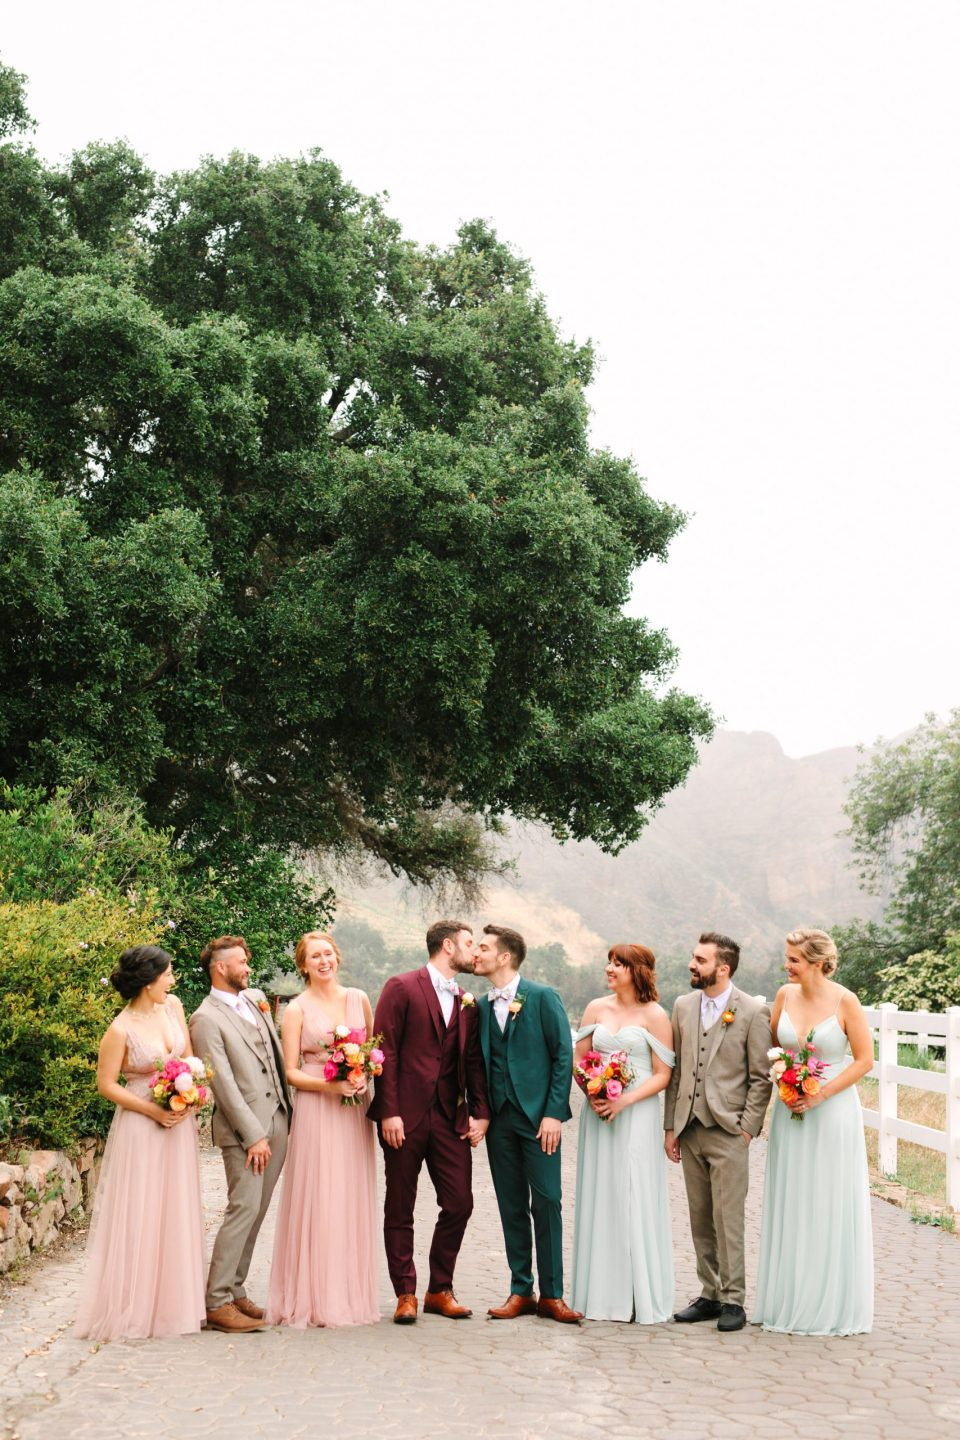 KC and Adam's Malibu Wedding Party by Mary Costa Photography